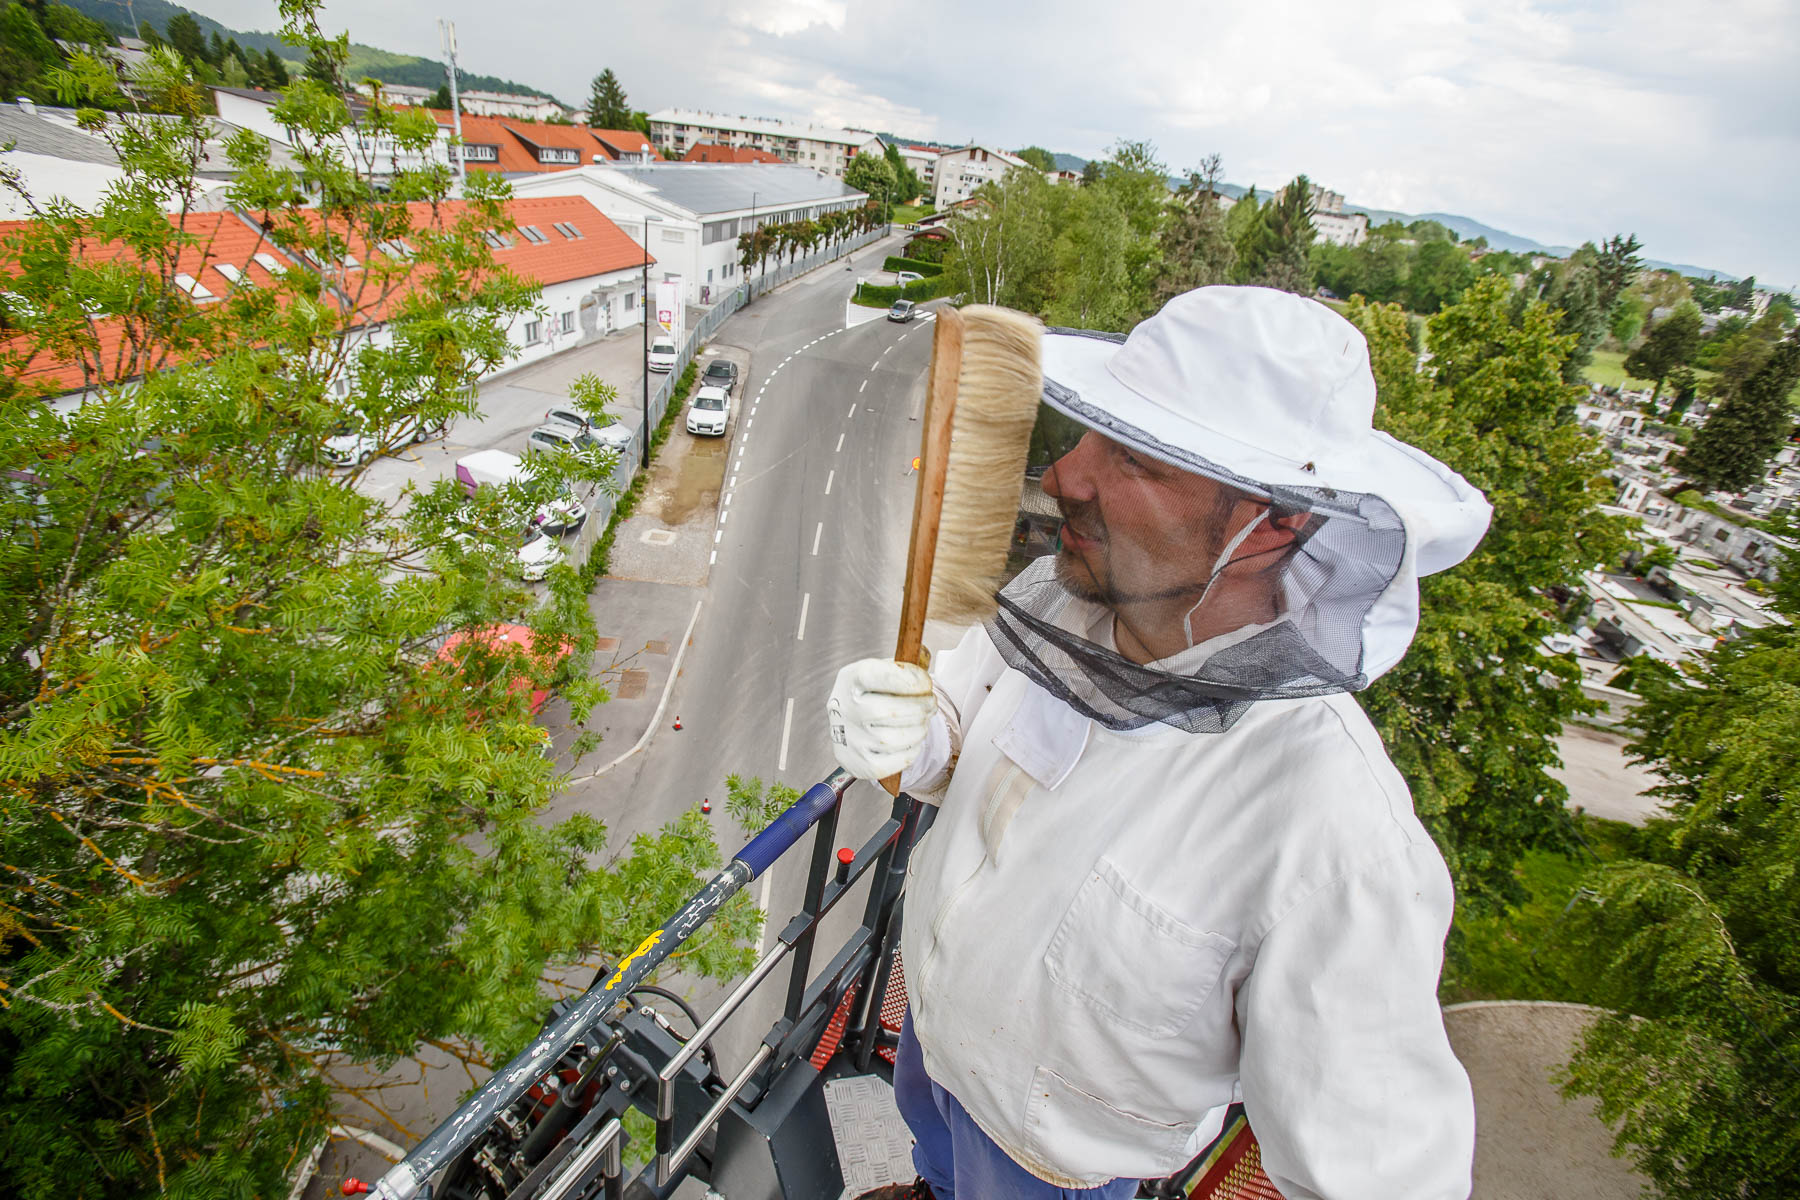 Trušnovec  sweeps of bees from his mask after removing a runaway swarm from a treetop in Ljubljana. In picking up swarms he often needs help of local fire departments that provide a ladder.